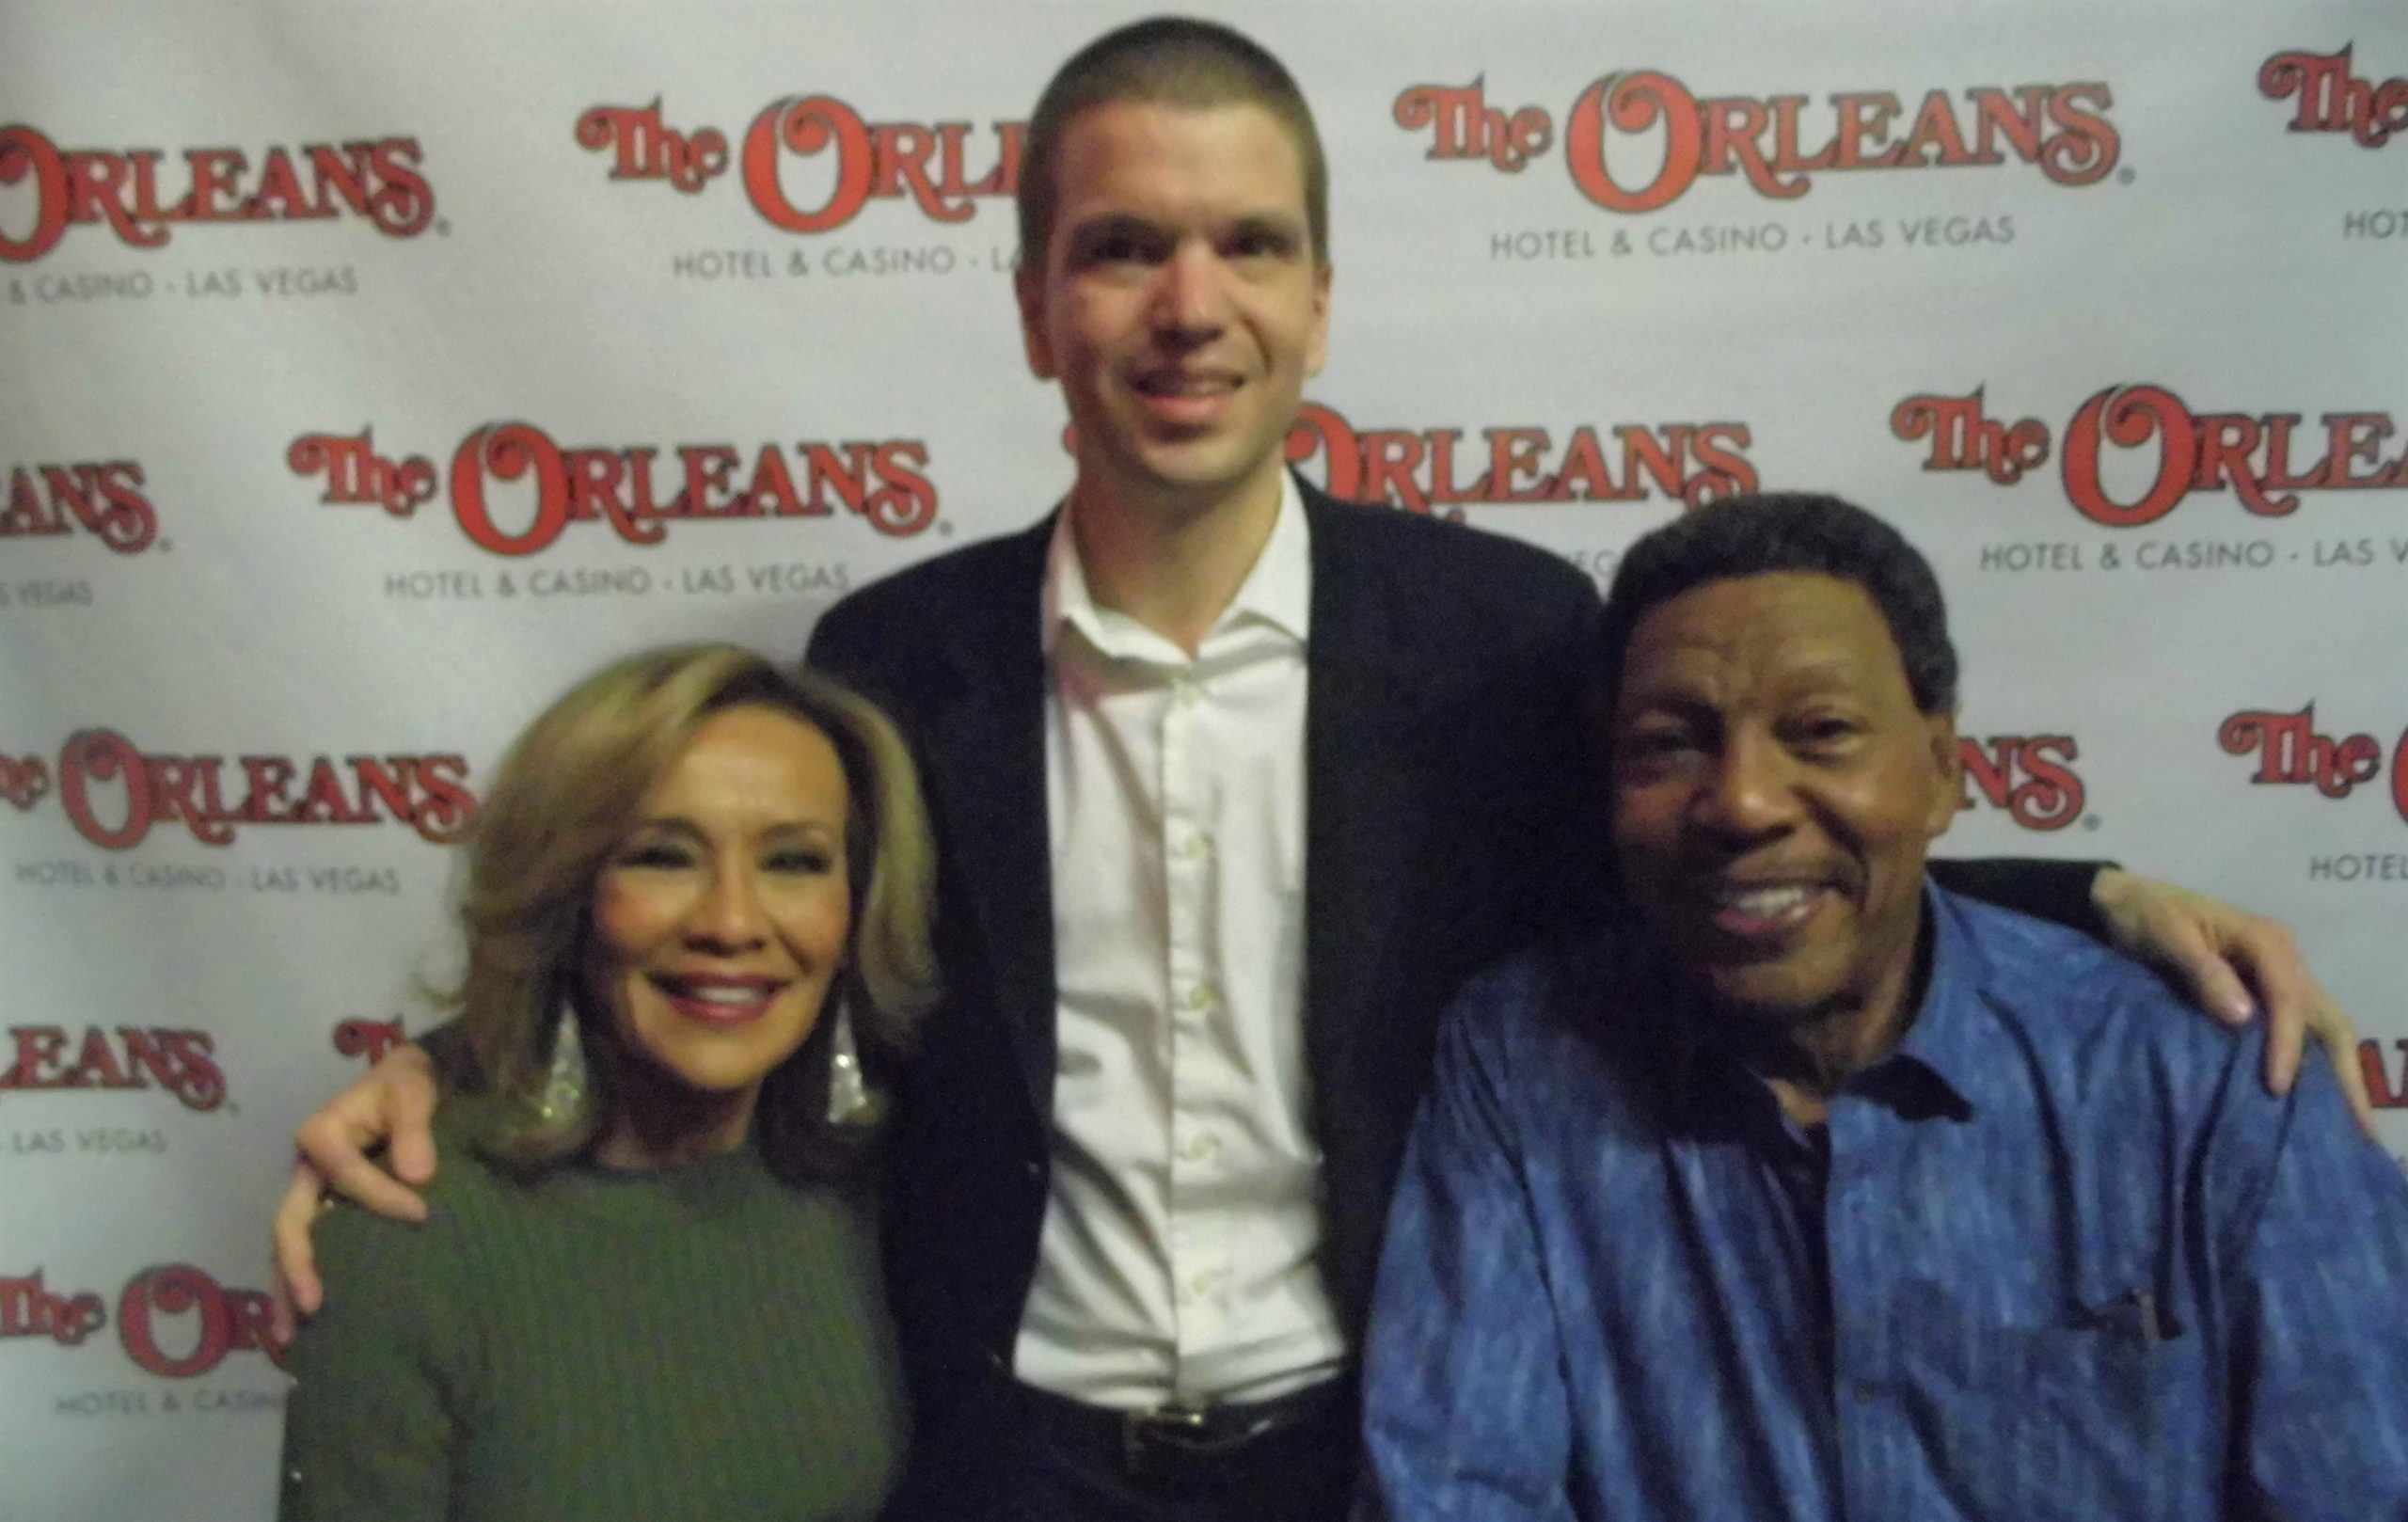 Billy Davis Jr, Marilyn McCoo, Billy Davis Jr. 2019, Chris Yandek, Marilyn McCoo 2019, Billy Davis 2019, Billy Davis Marilyn McCoo Las Vegas, 5th Dimension 2019